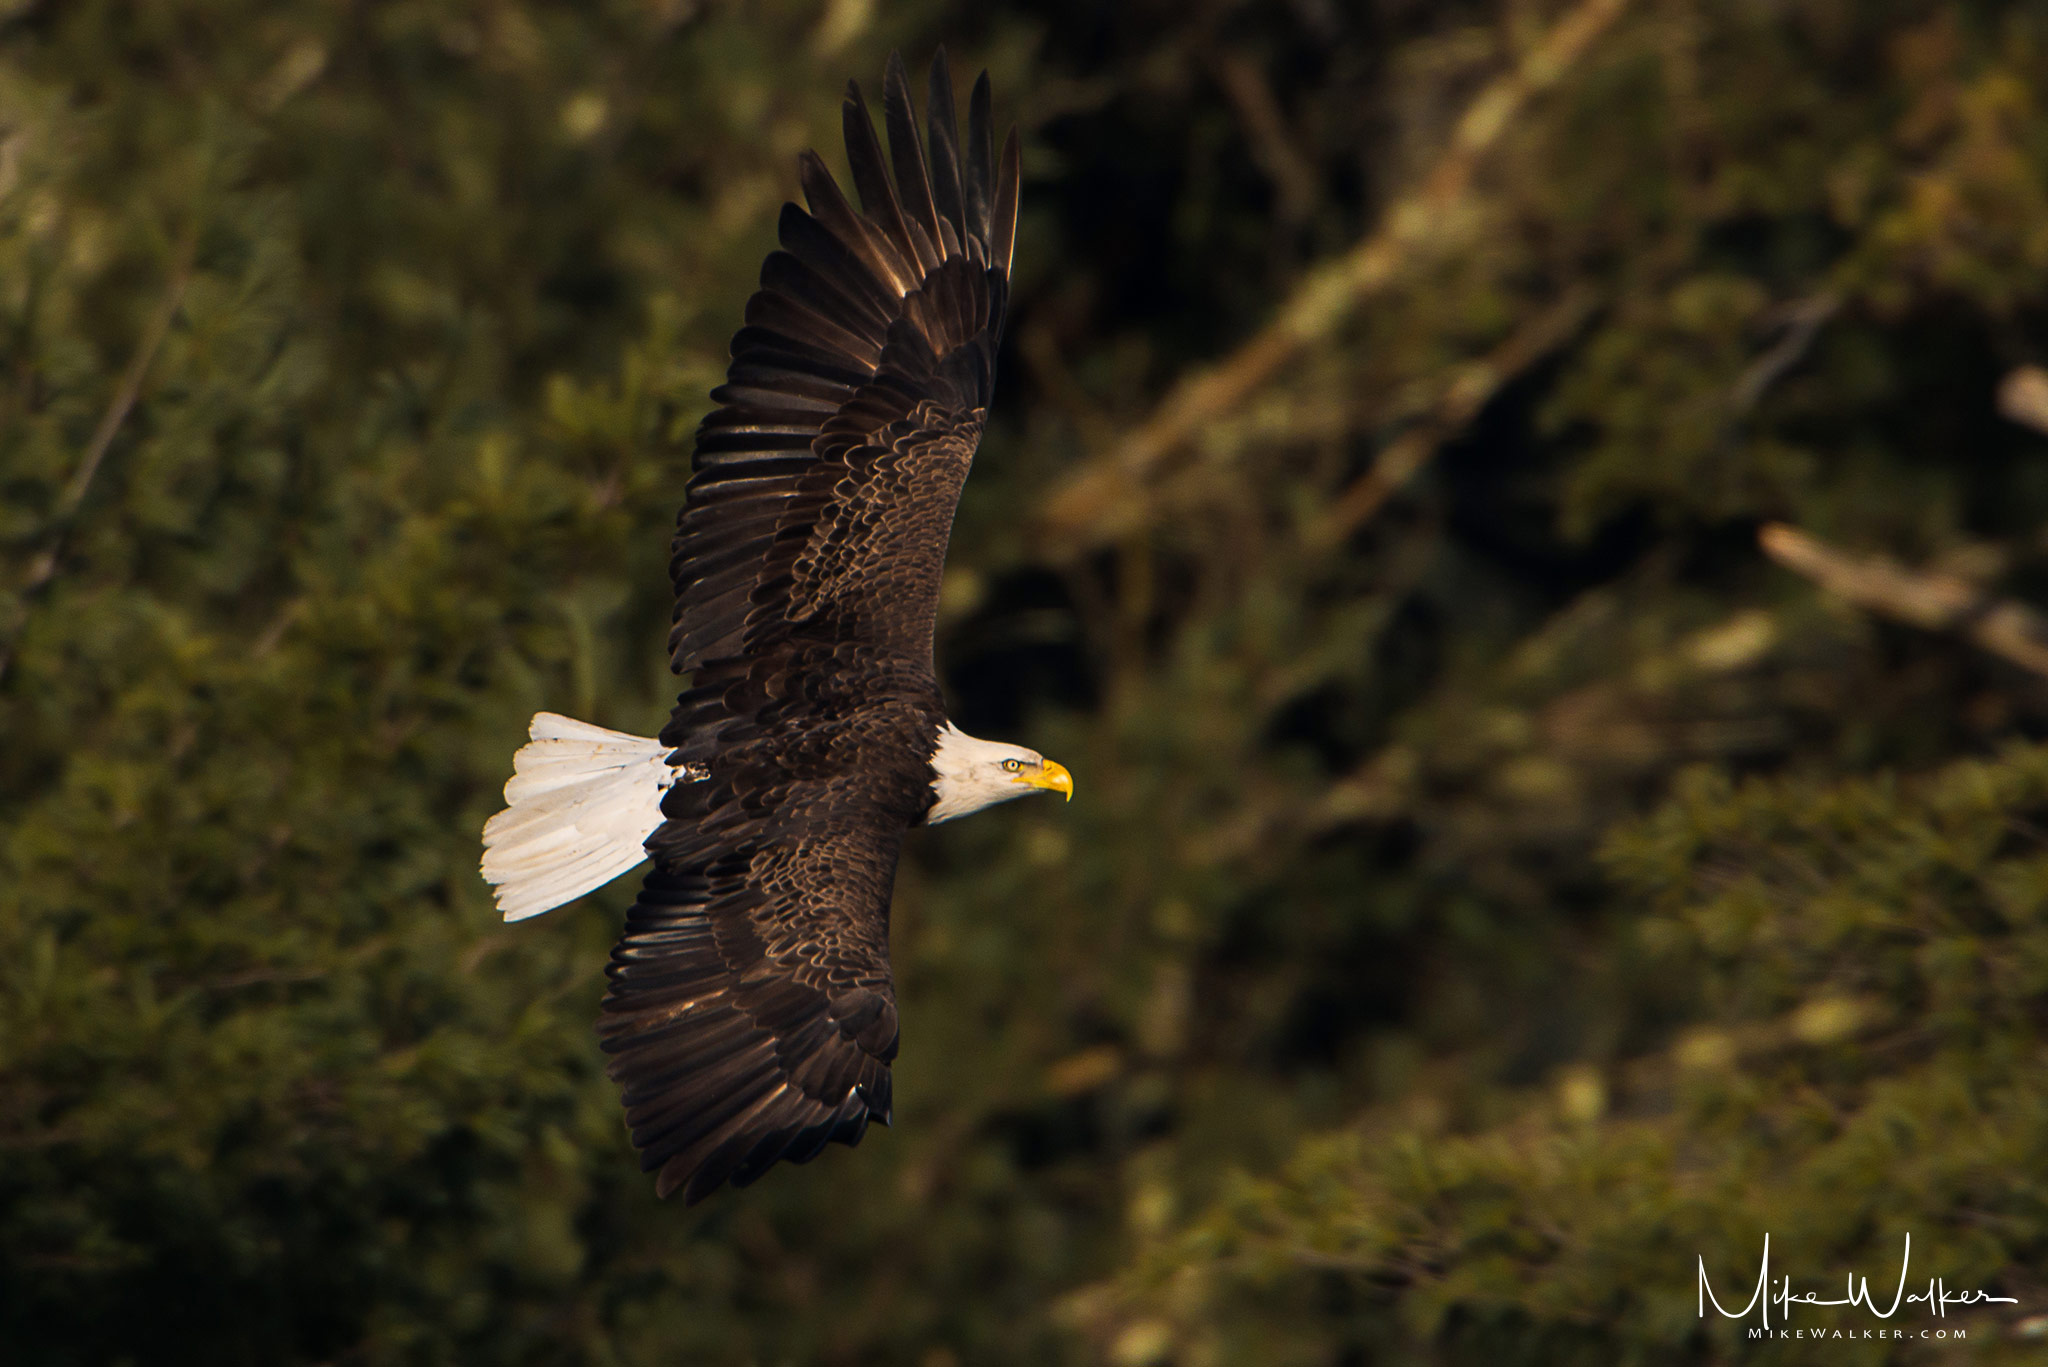 Bald eagle soaring through the air with trees in the background. Nature photography by Mike Walker.